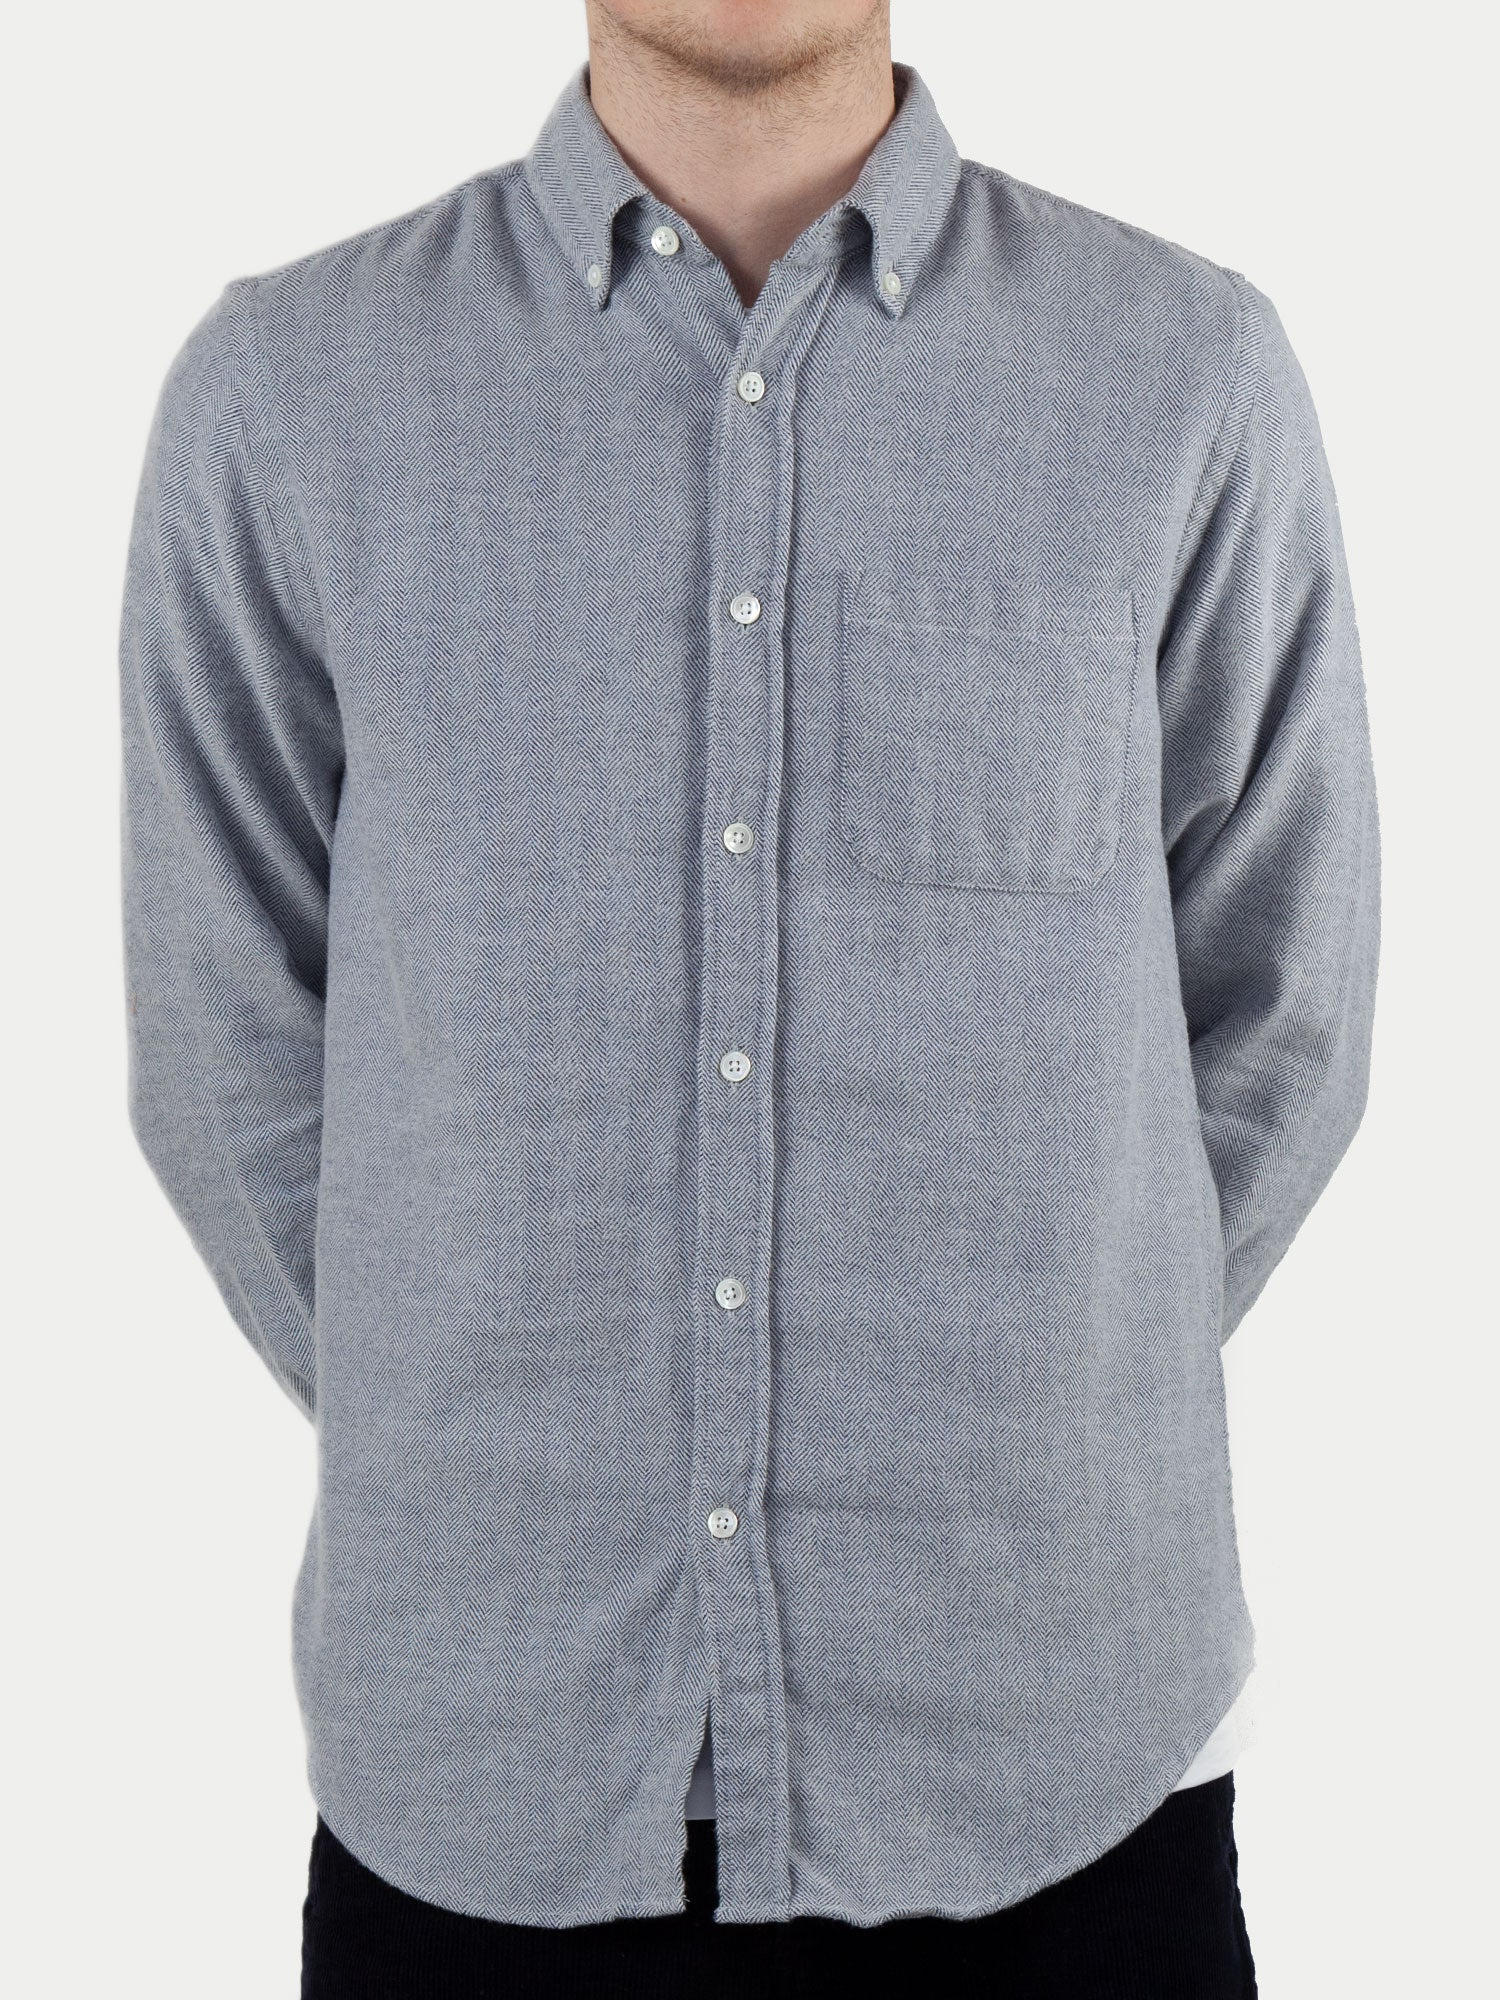 Portuguese Flannel Espiga Shirt (Light Blue) m1